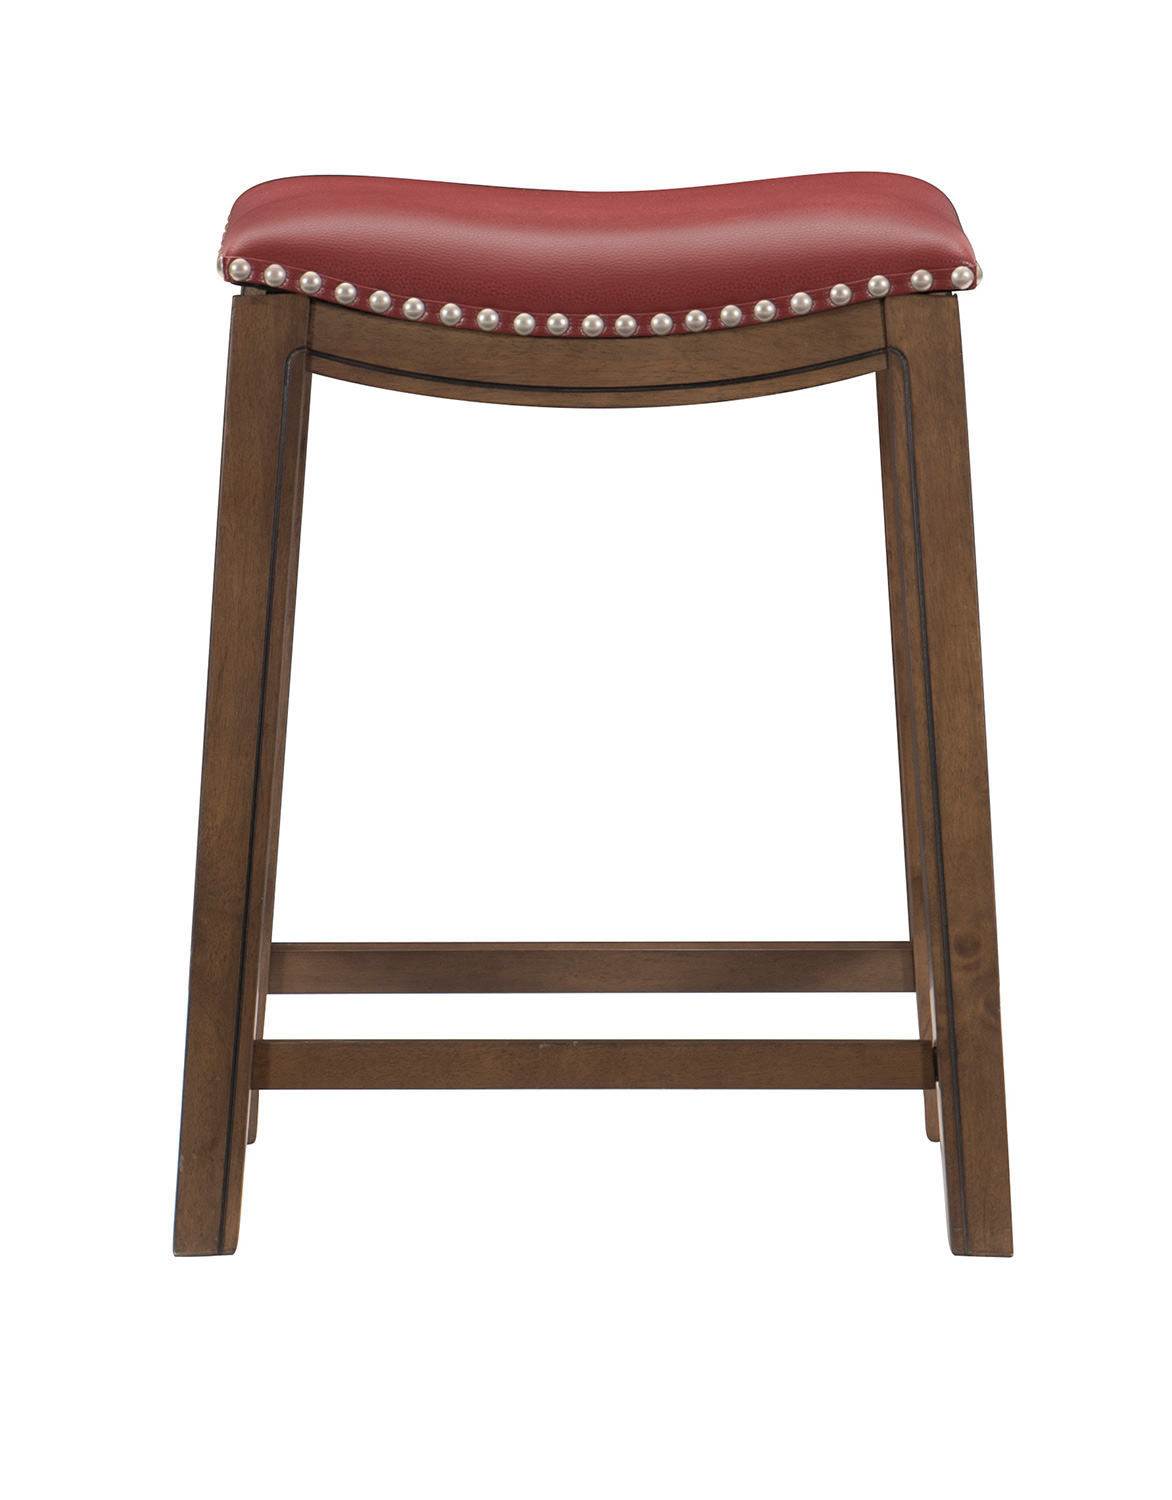 Homelegance 24 SH Stool - Red